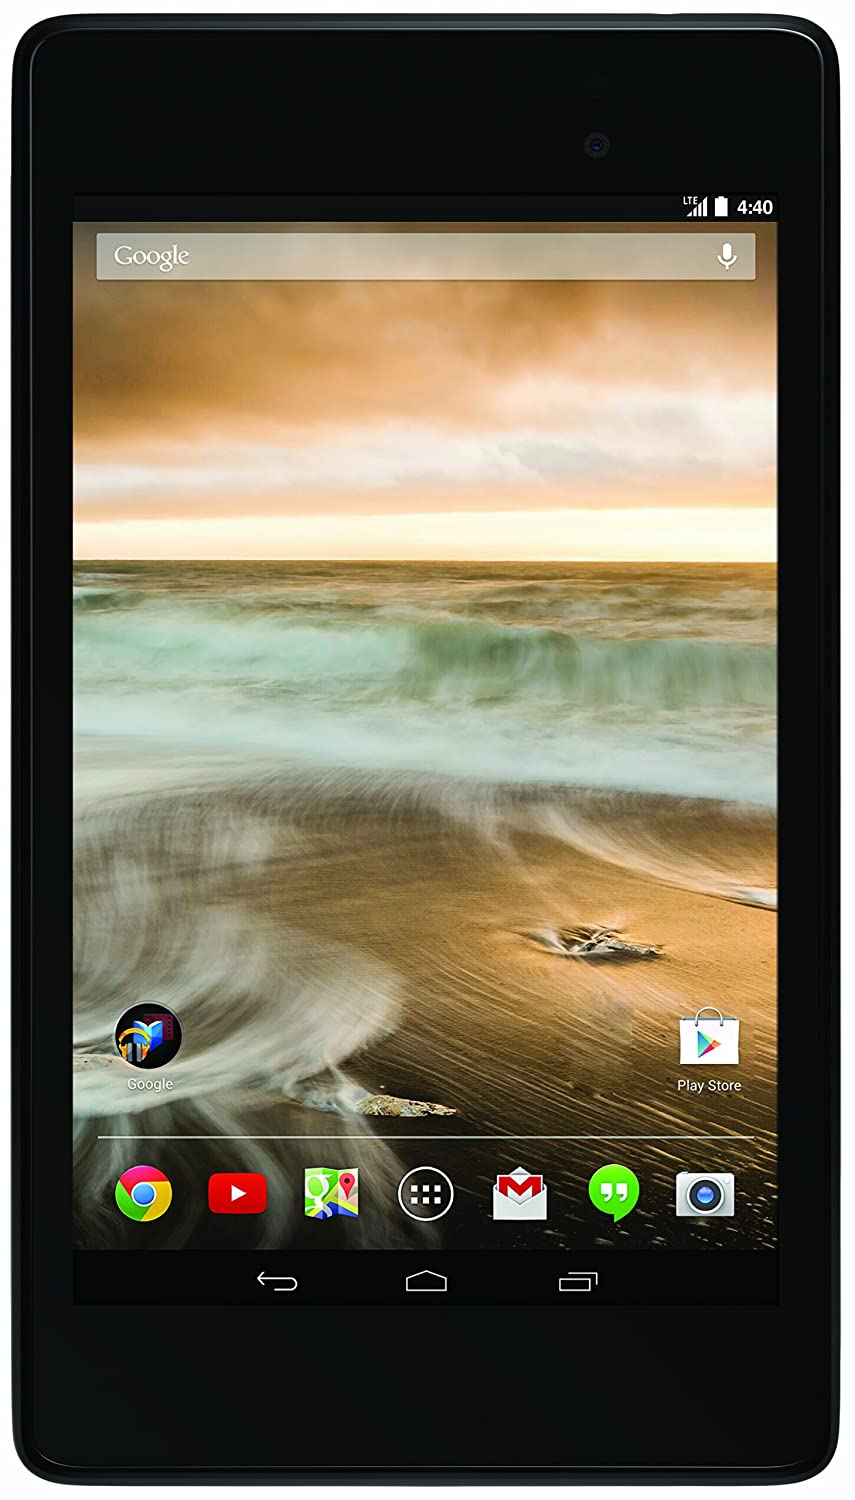 Google Nexus 7 4G LTE Tablet by ASUS, Black 7-Inch 32GB (Verizon Wireless)